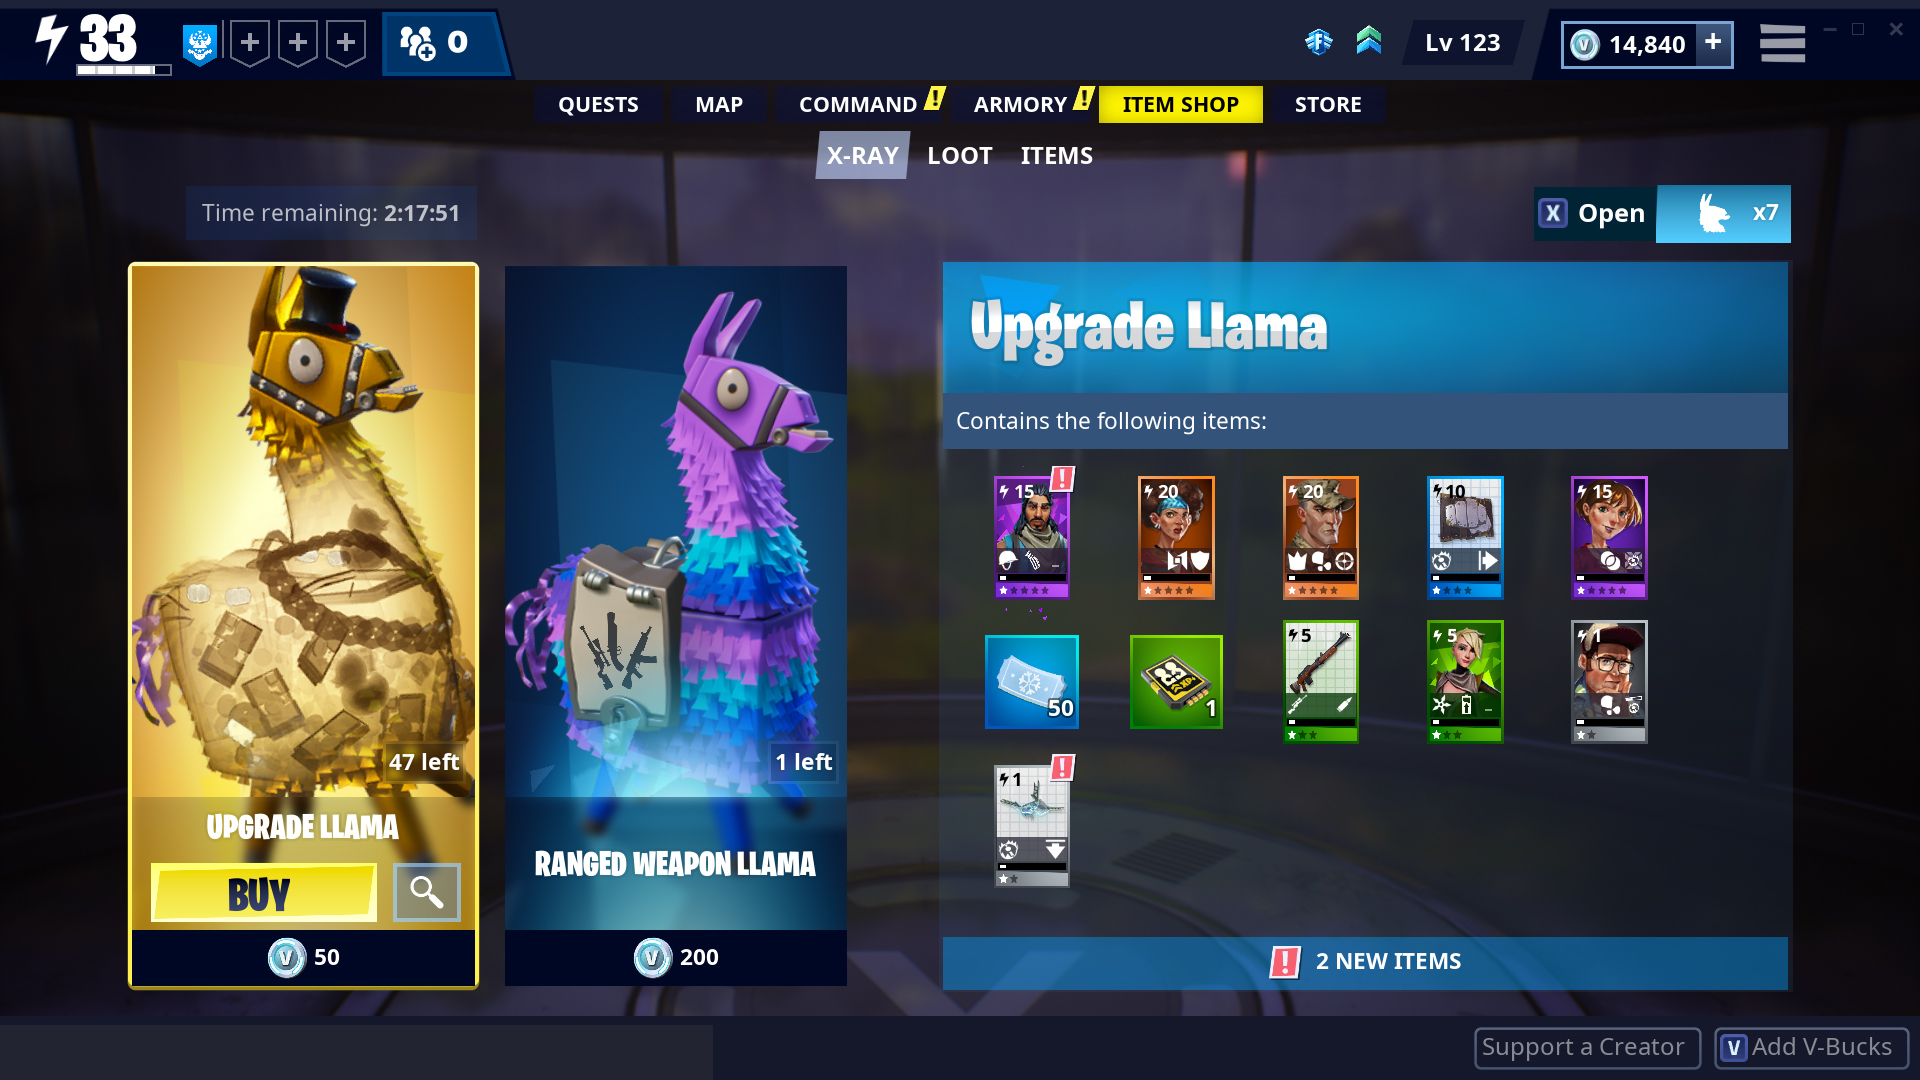 Fortnite Roadmap Save Tje Wpr D Pictures Of Fortnite S Save The World Llama Loot Is Getting Tweaked 1 2